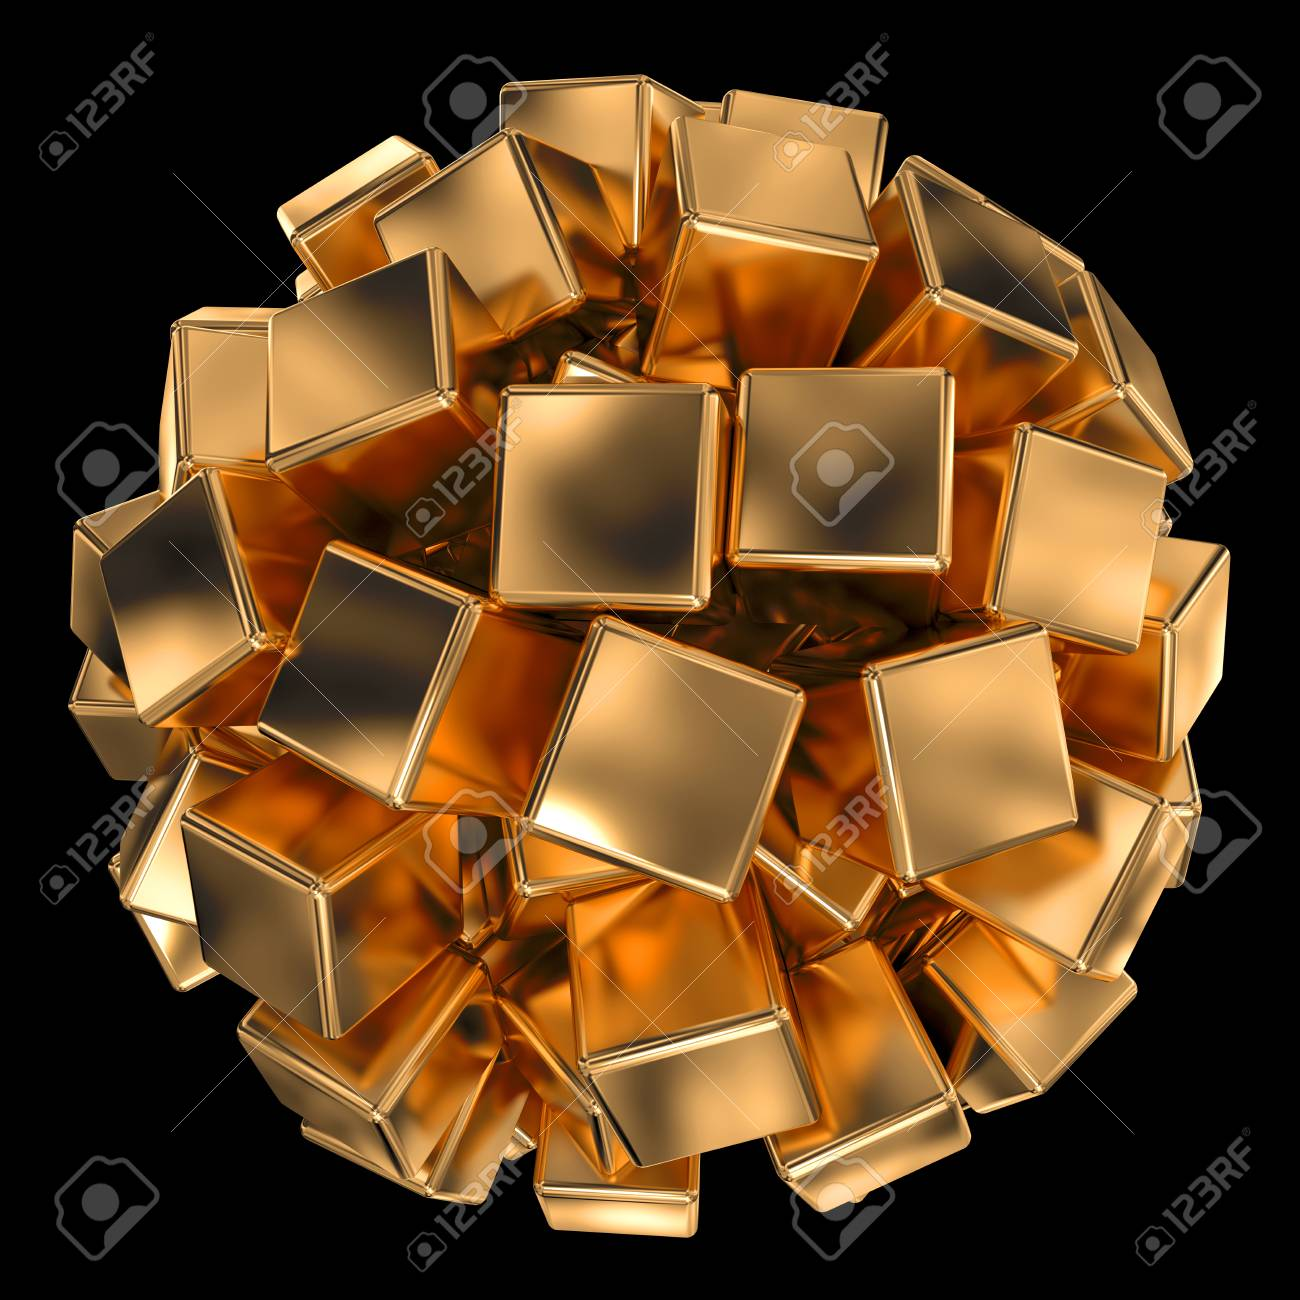 many golden cubes forming spherical shape isolated on black Stock Photo - 22471498